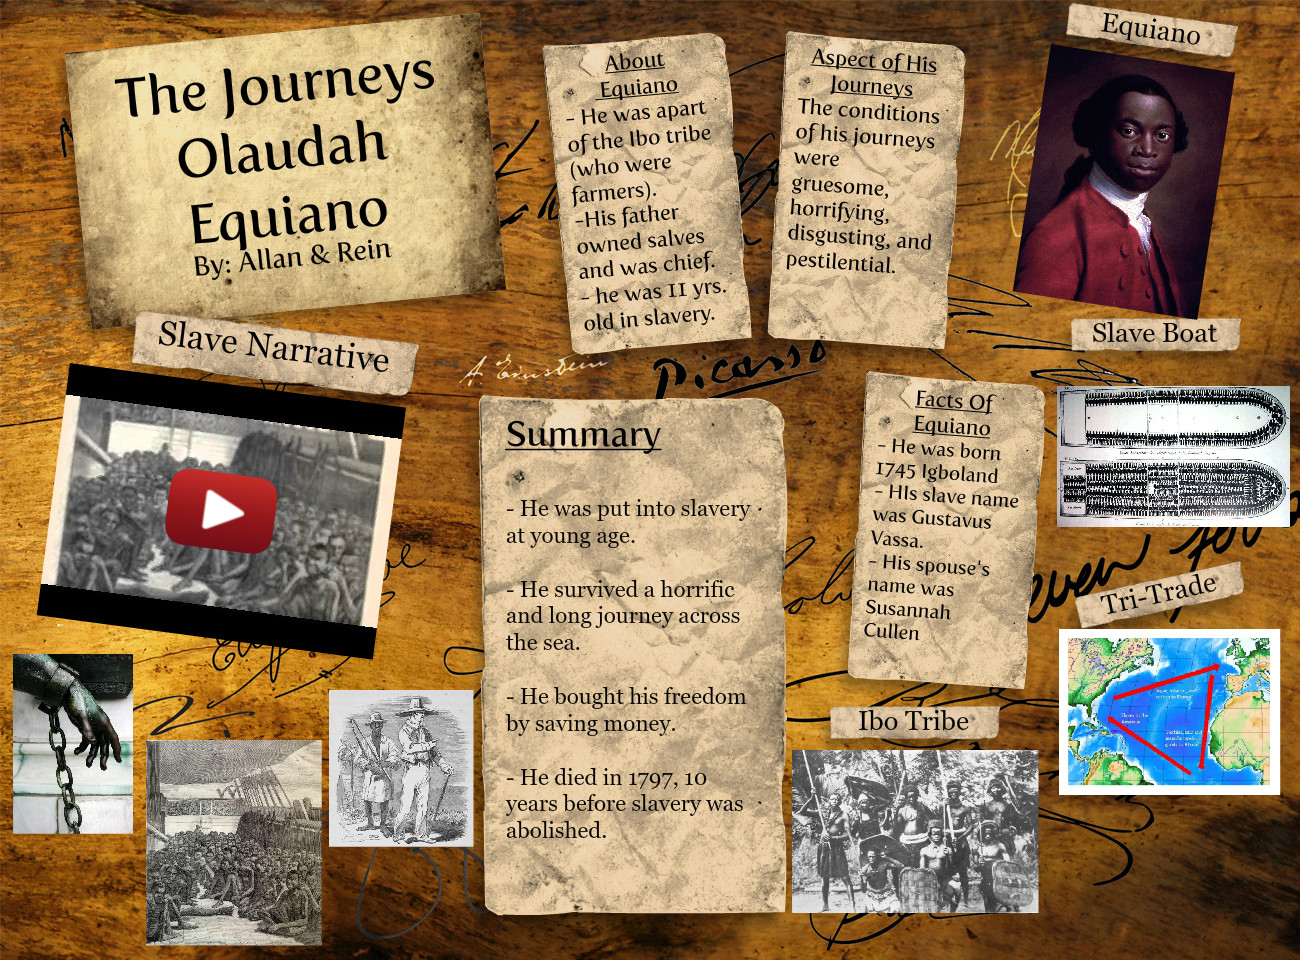 The Journeys Olaudah Equiano